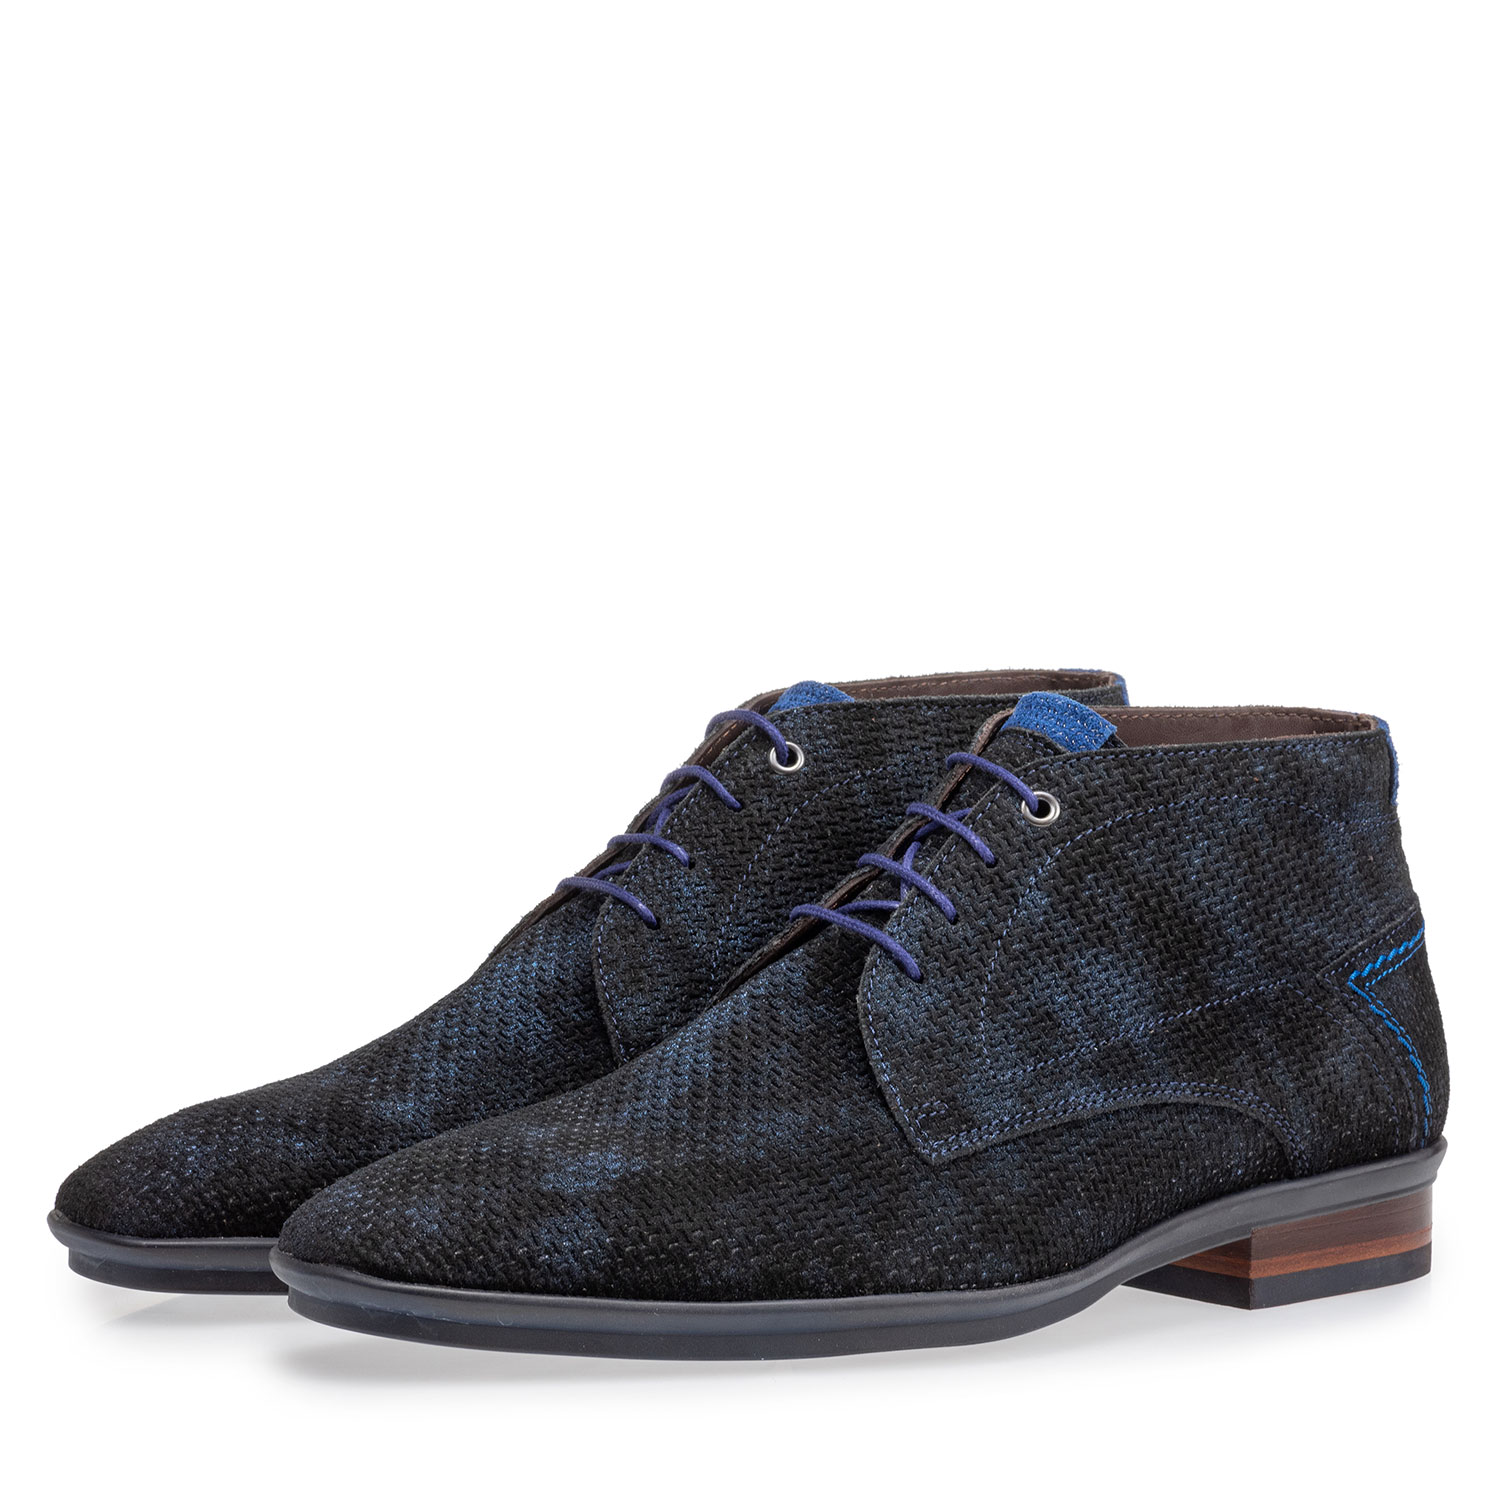 20440/23 - Lace boot blue with print